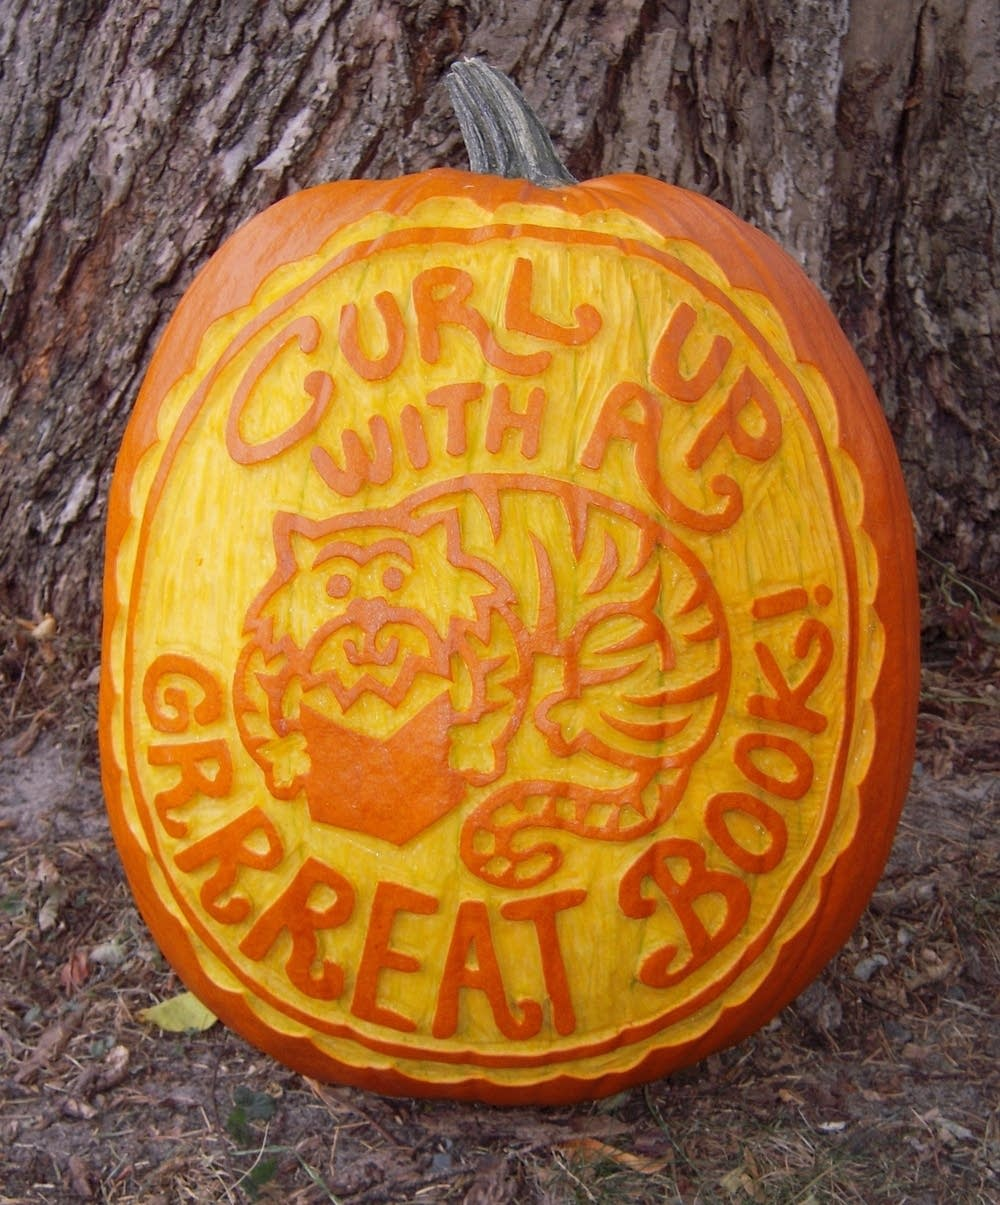 A book-inspired pumpkin